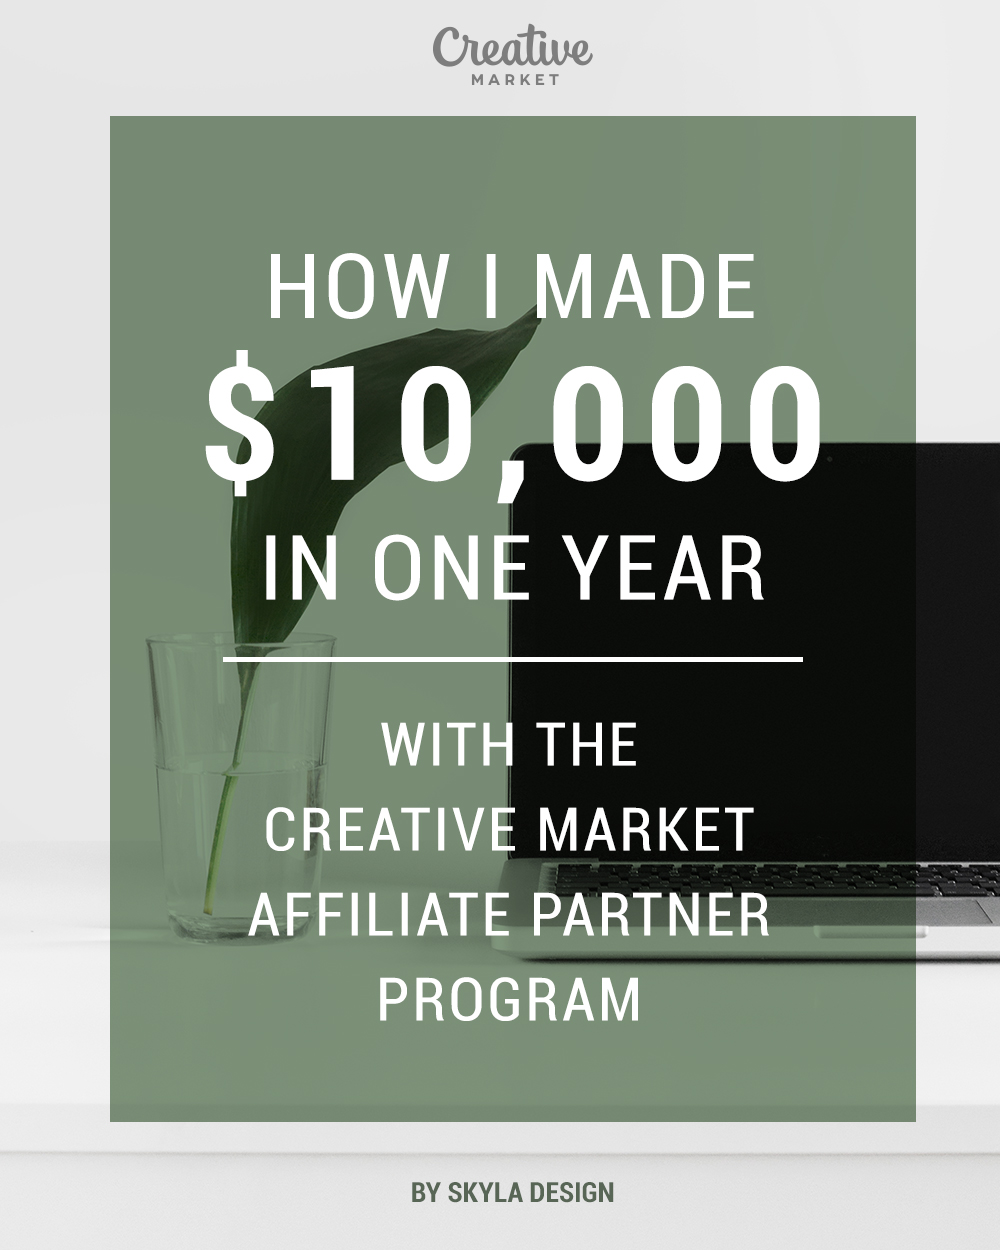 How I made 10k with Creative Market affiliate partner program